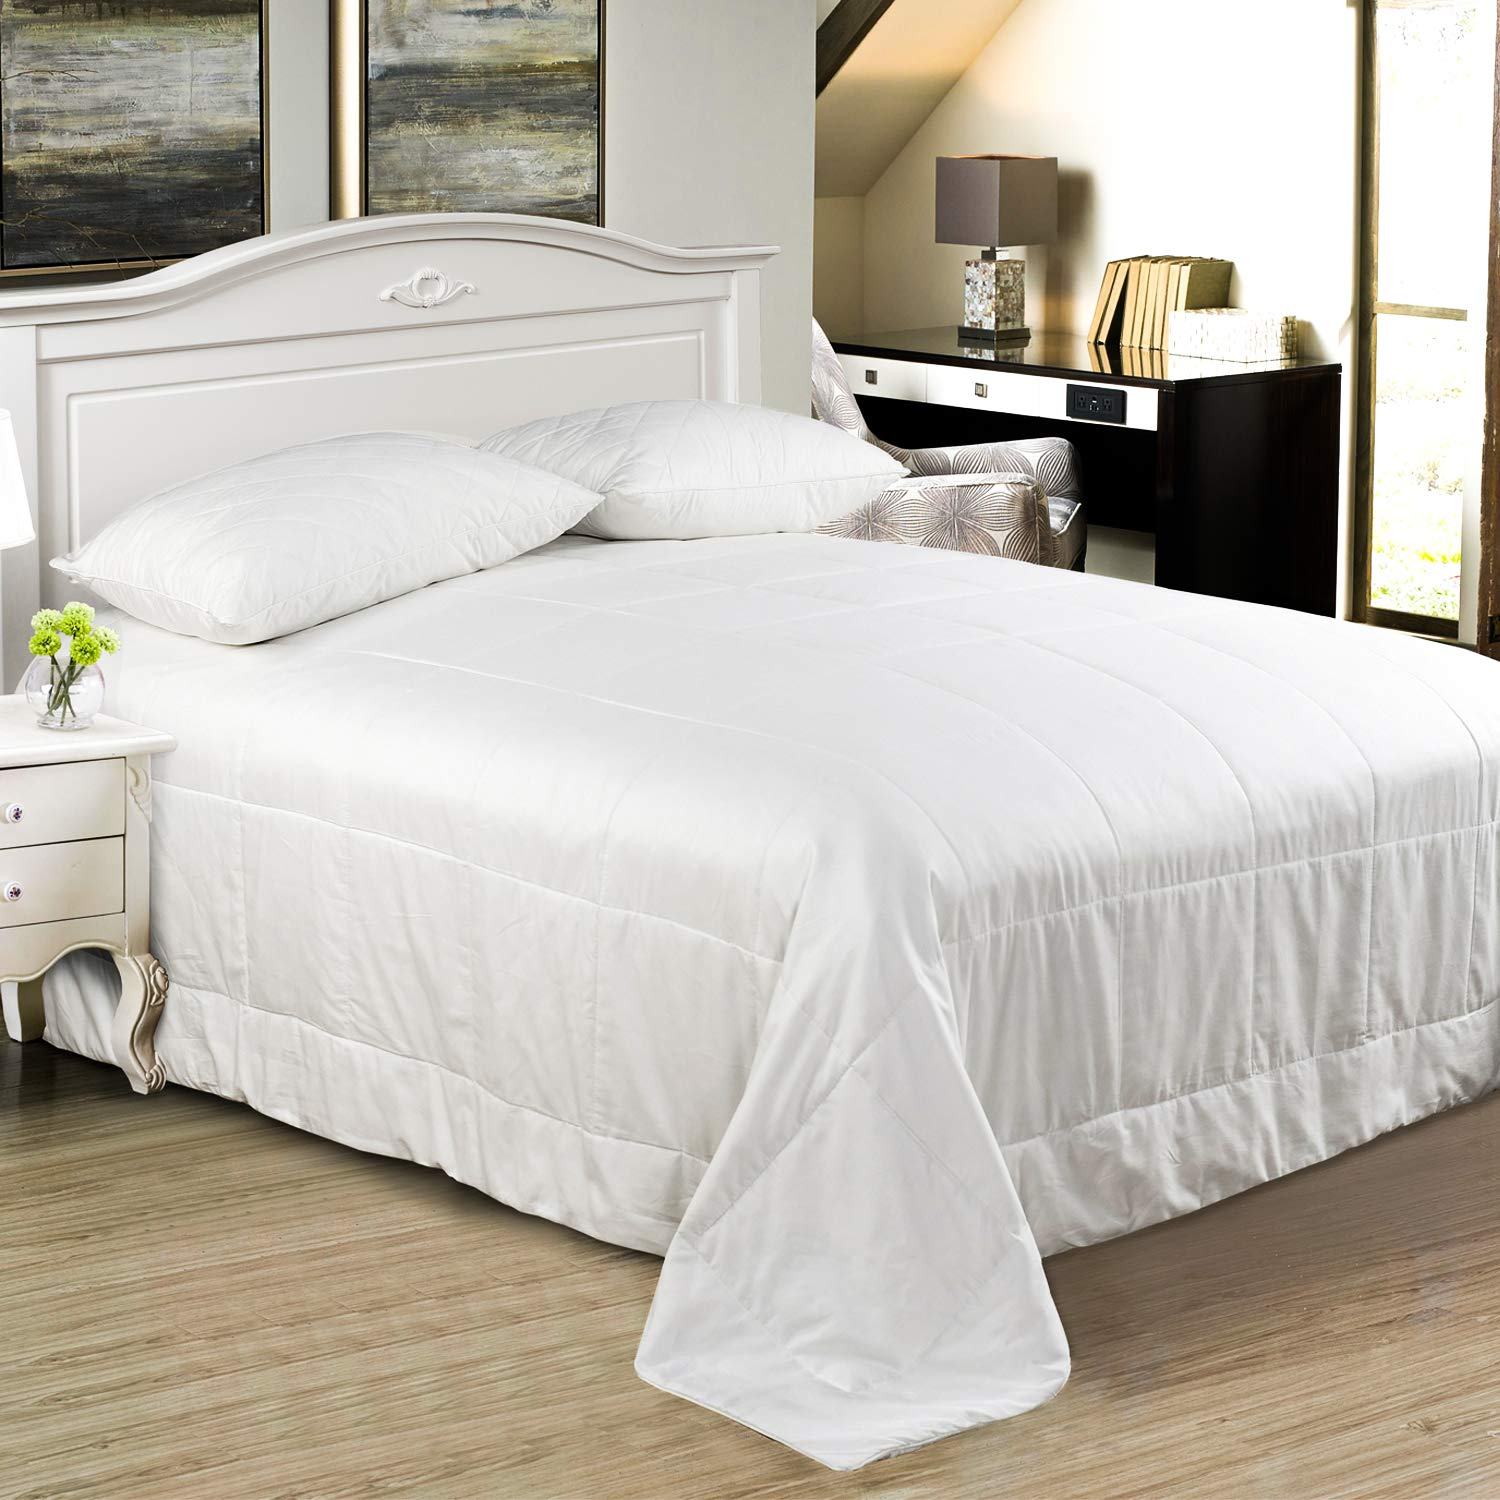 Silk Comforter/Duvet/Quilt, Cool for Fall Season, 100% Natural Long Strand Pure Silk Filled, 100% Cotton Sateen Casing, Breathable Lightweight Highly Ventilated, Long Lasting for All-Season Since Silk